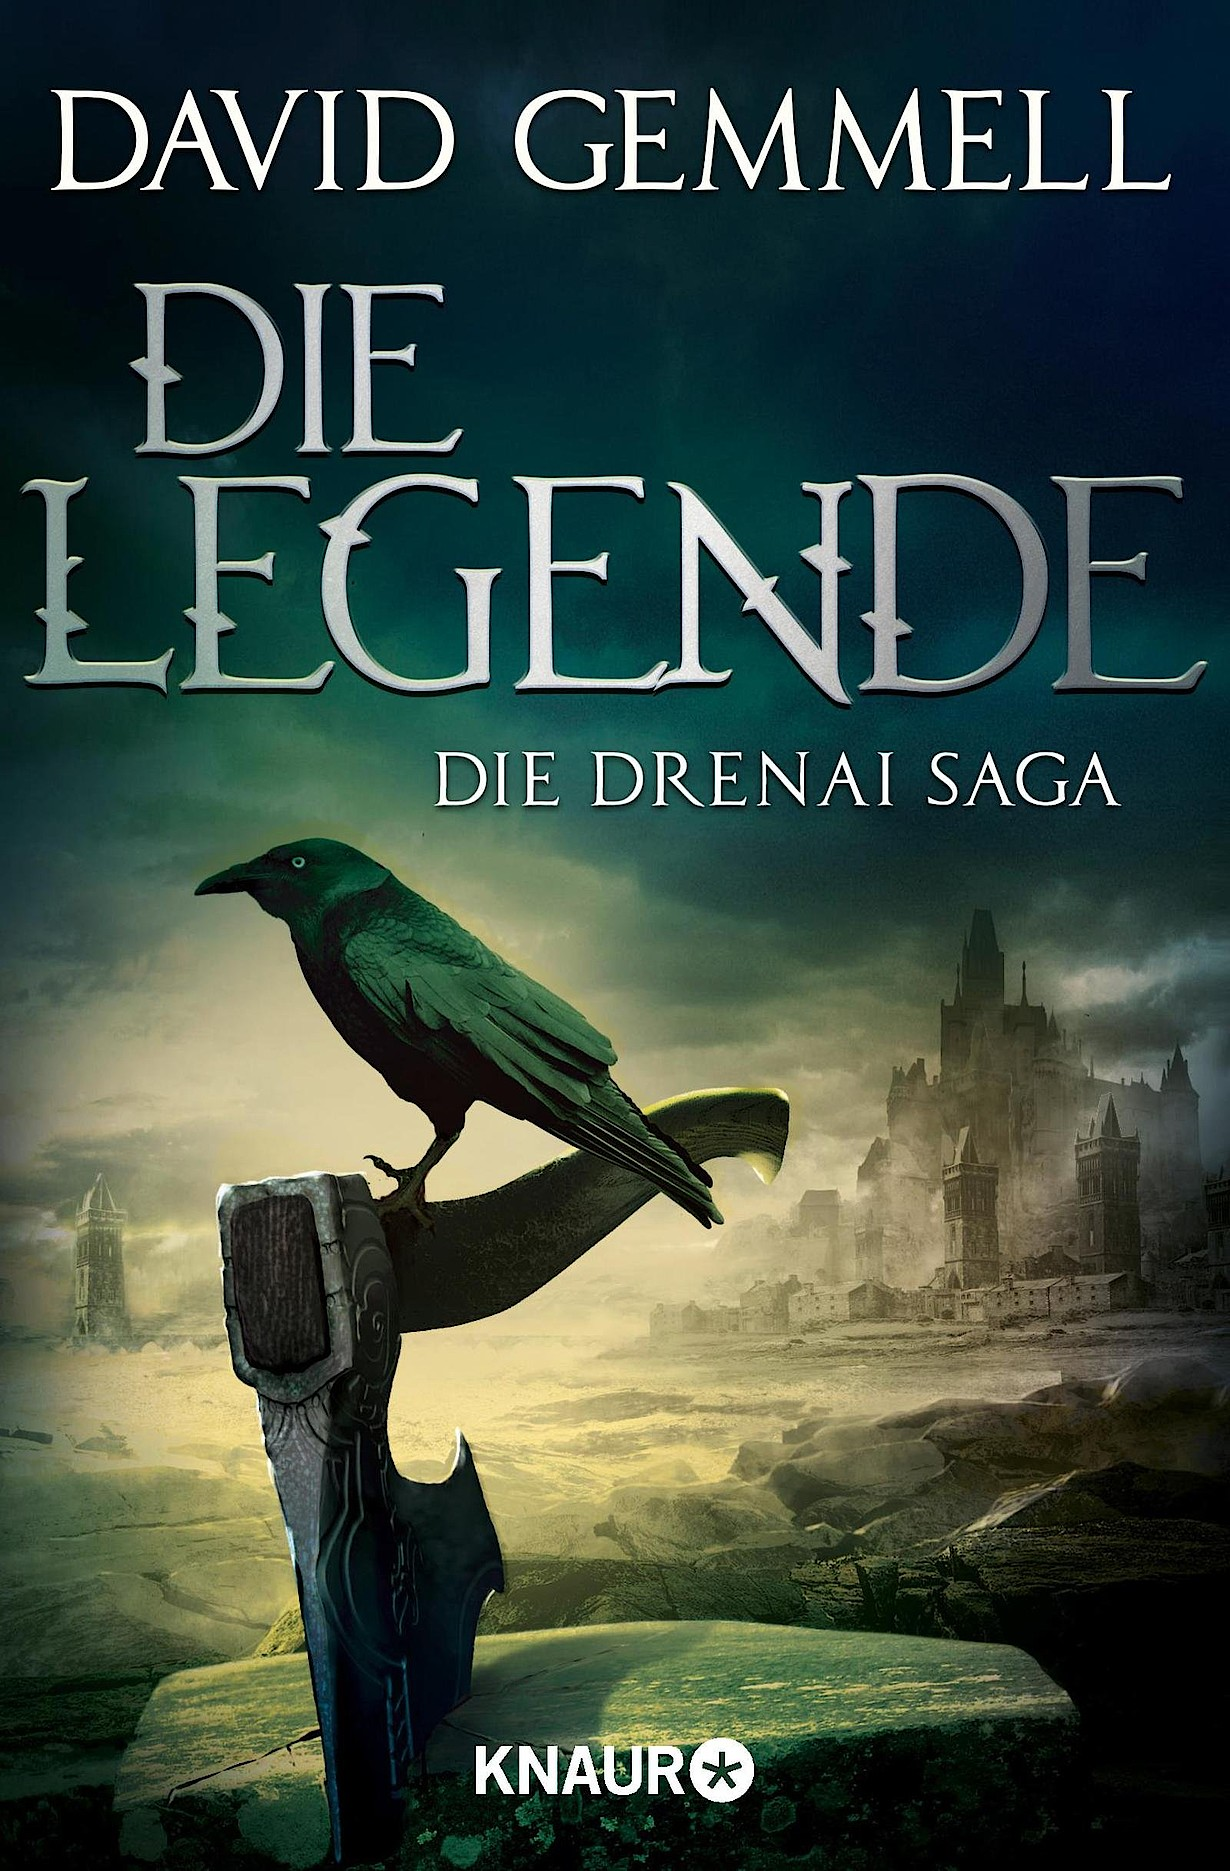 Die Legende von David Gemmell bei Amazon bestellen